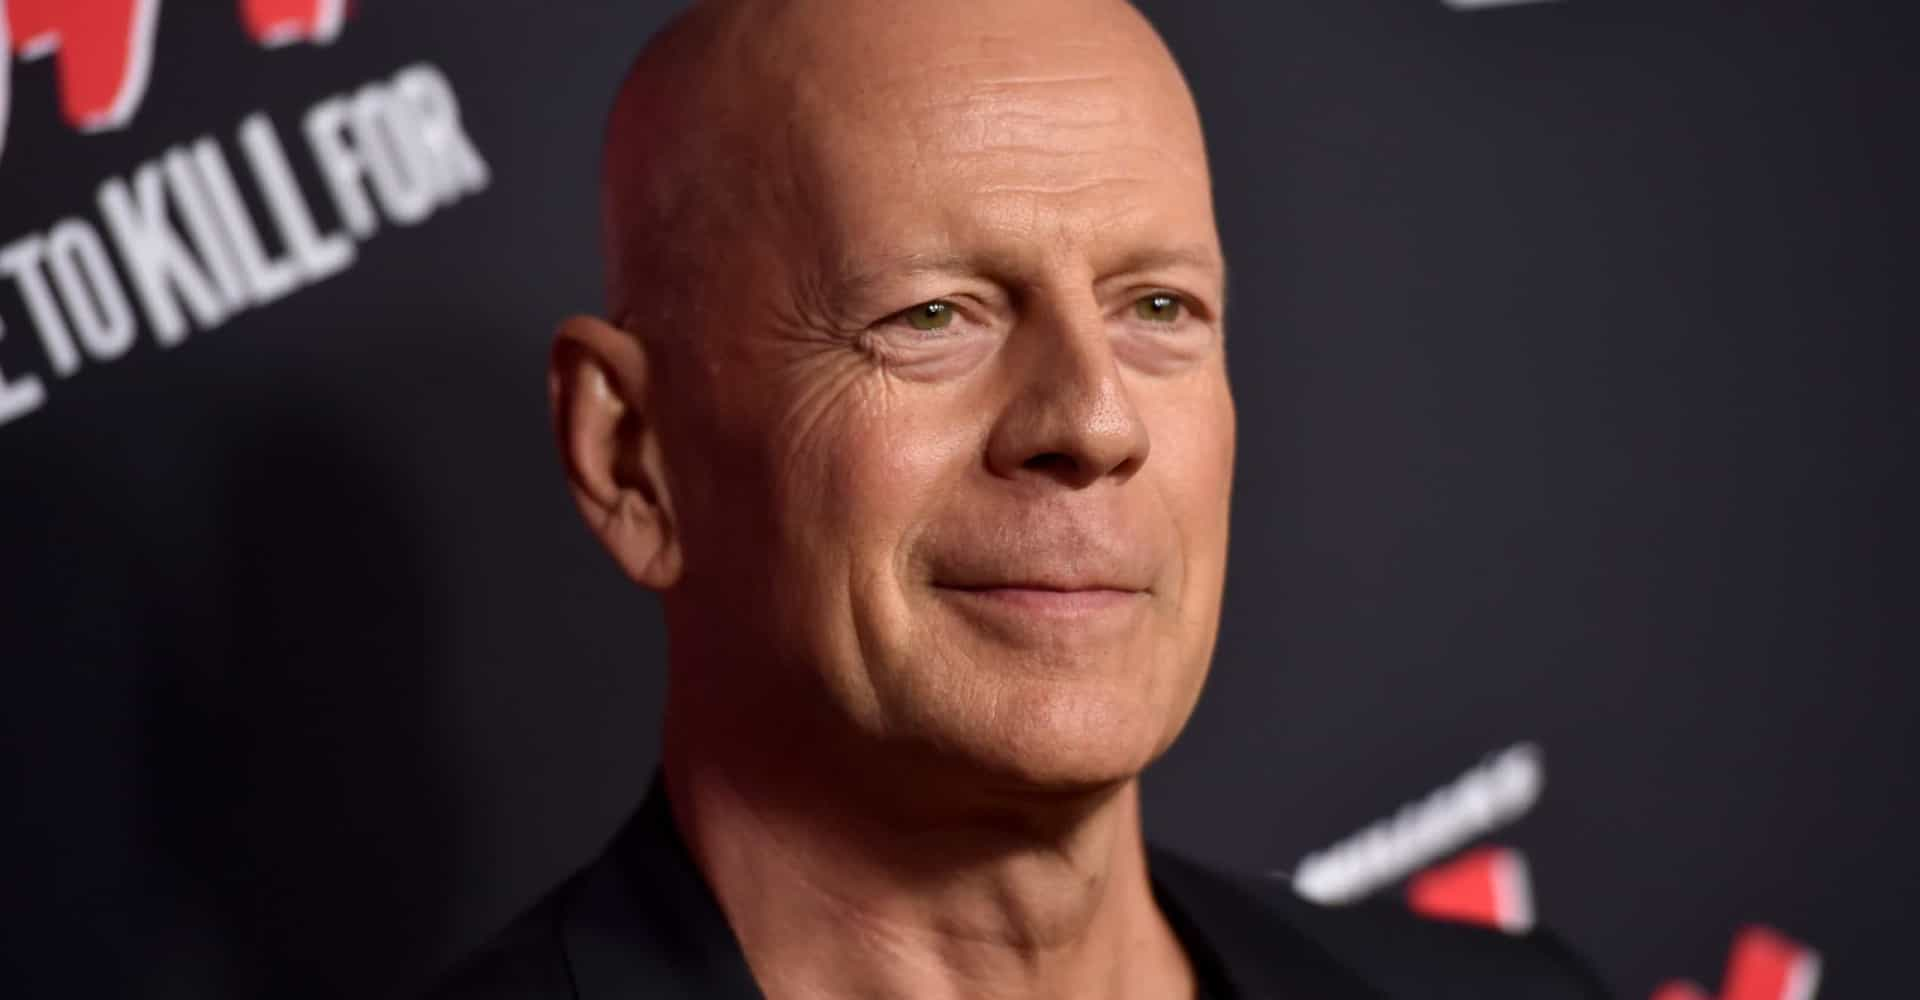 Bruce Willis: The smirky tough guy with a heart